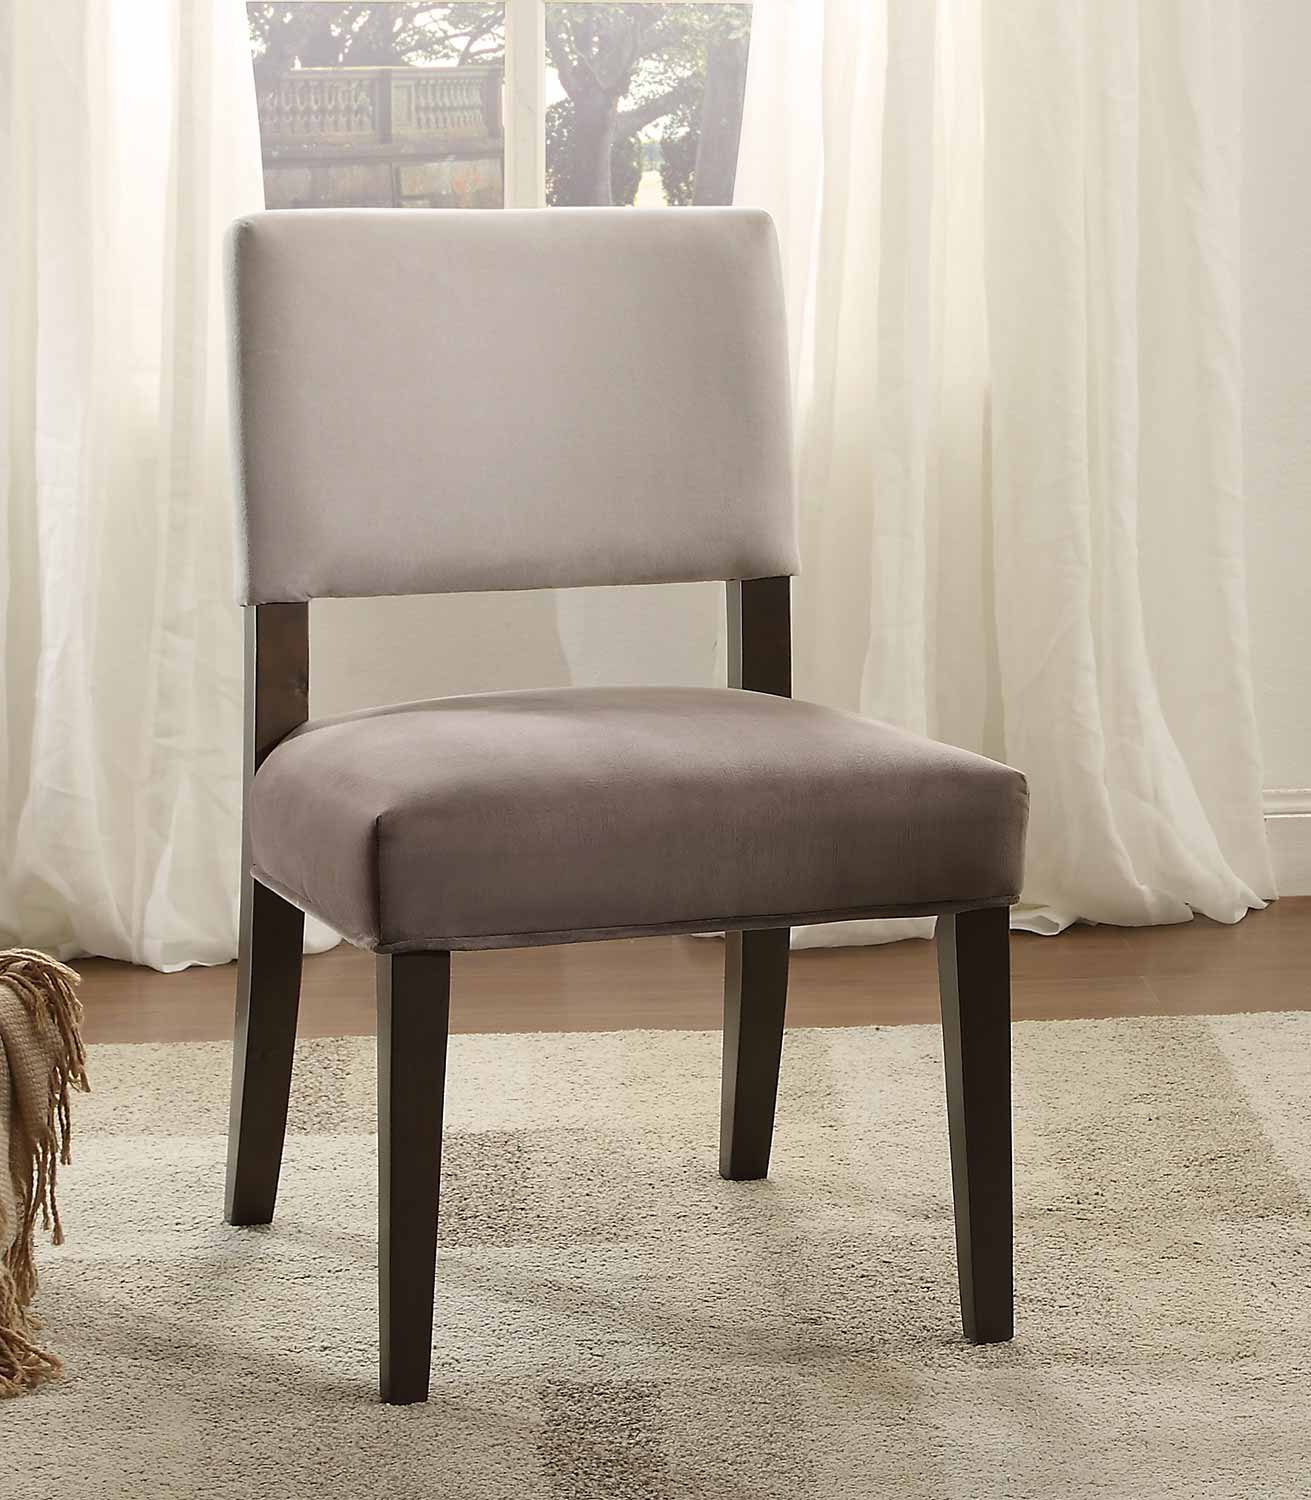 Homelegance Jacinta Two-Toned Accent Chair - Grey